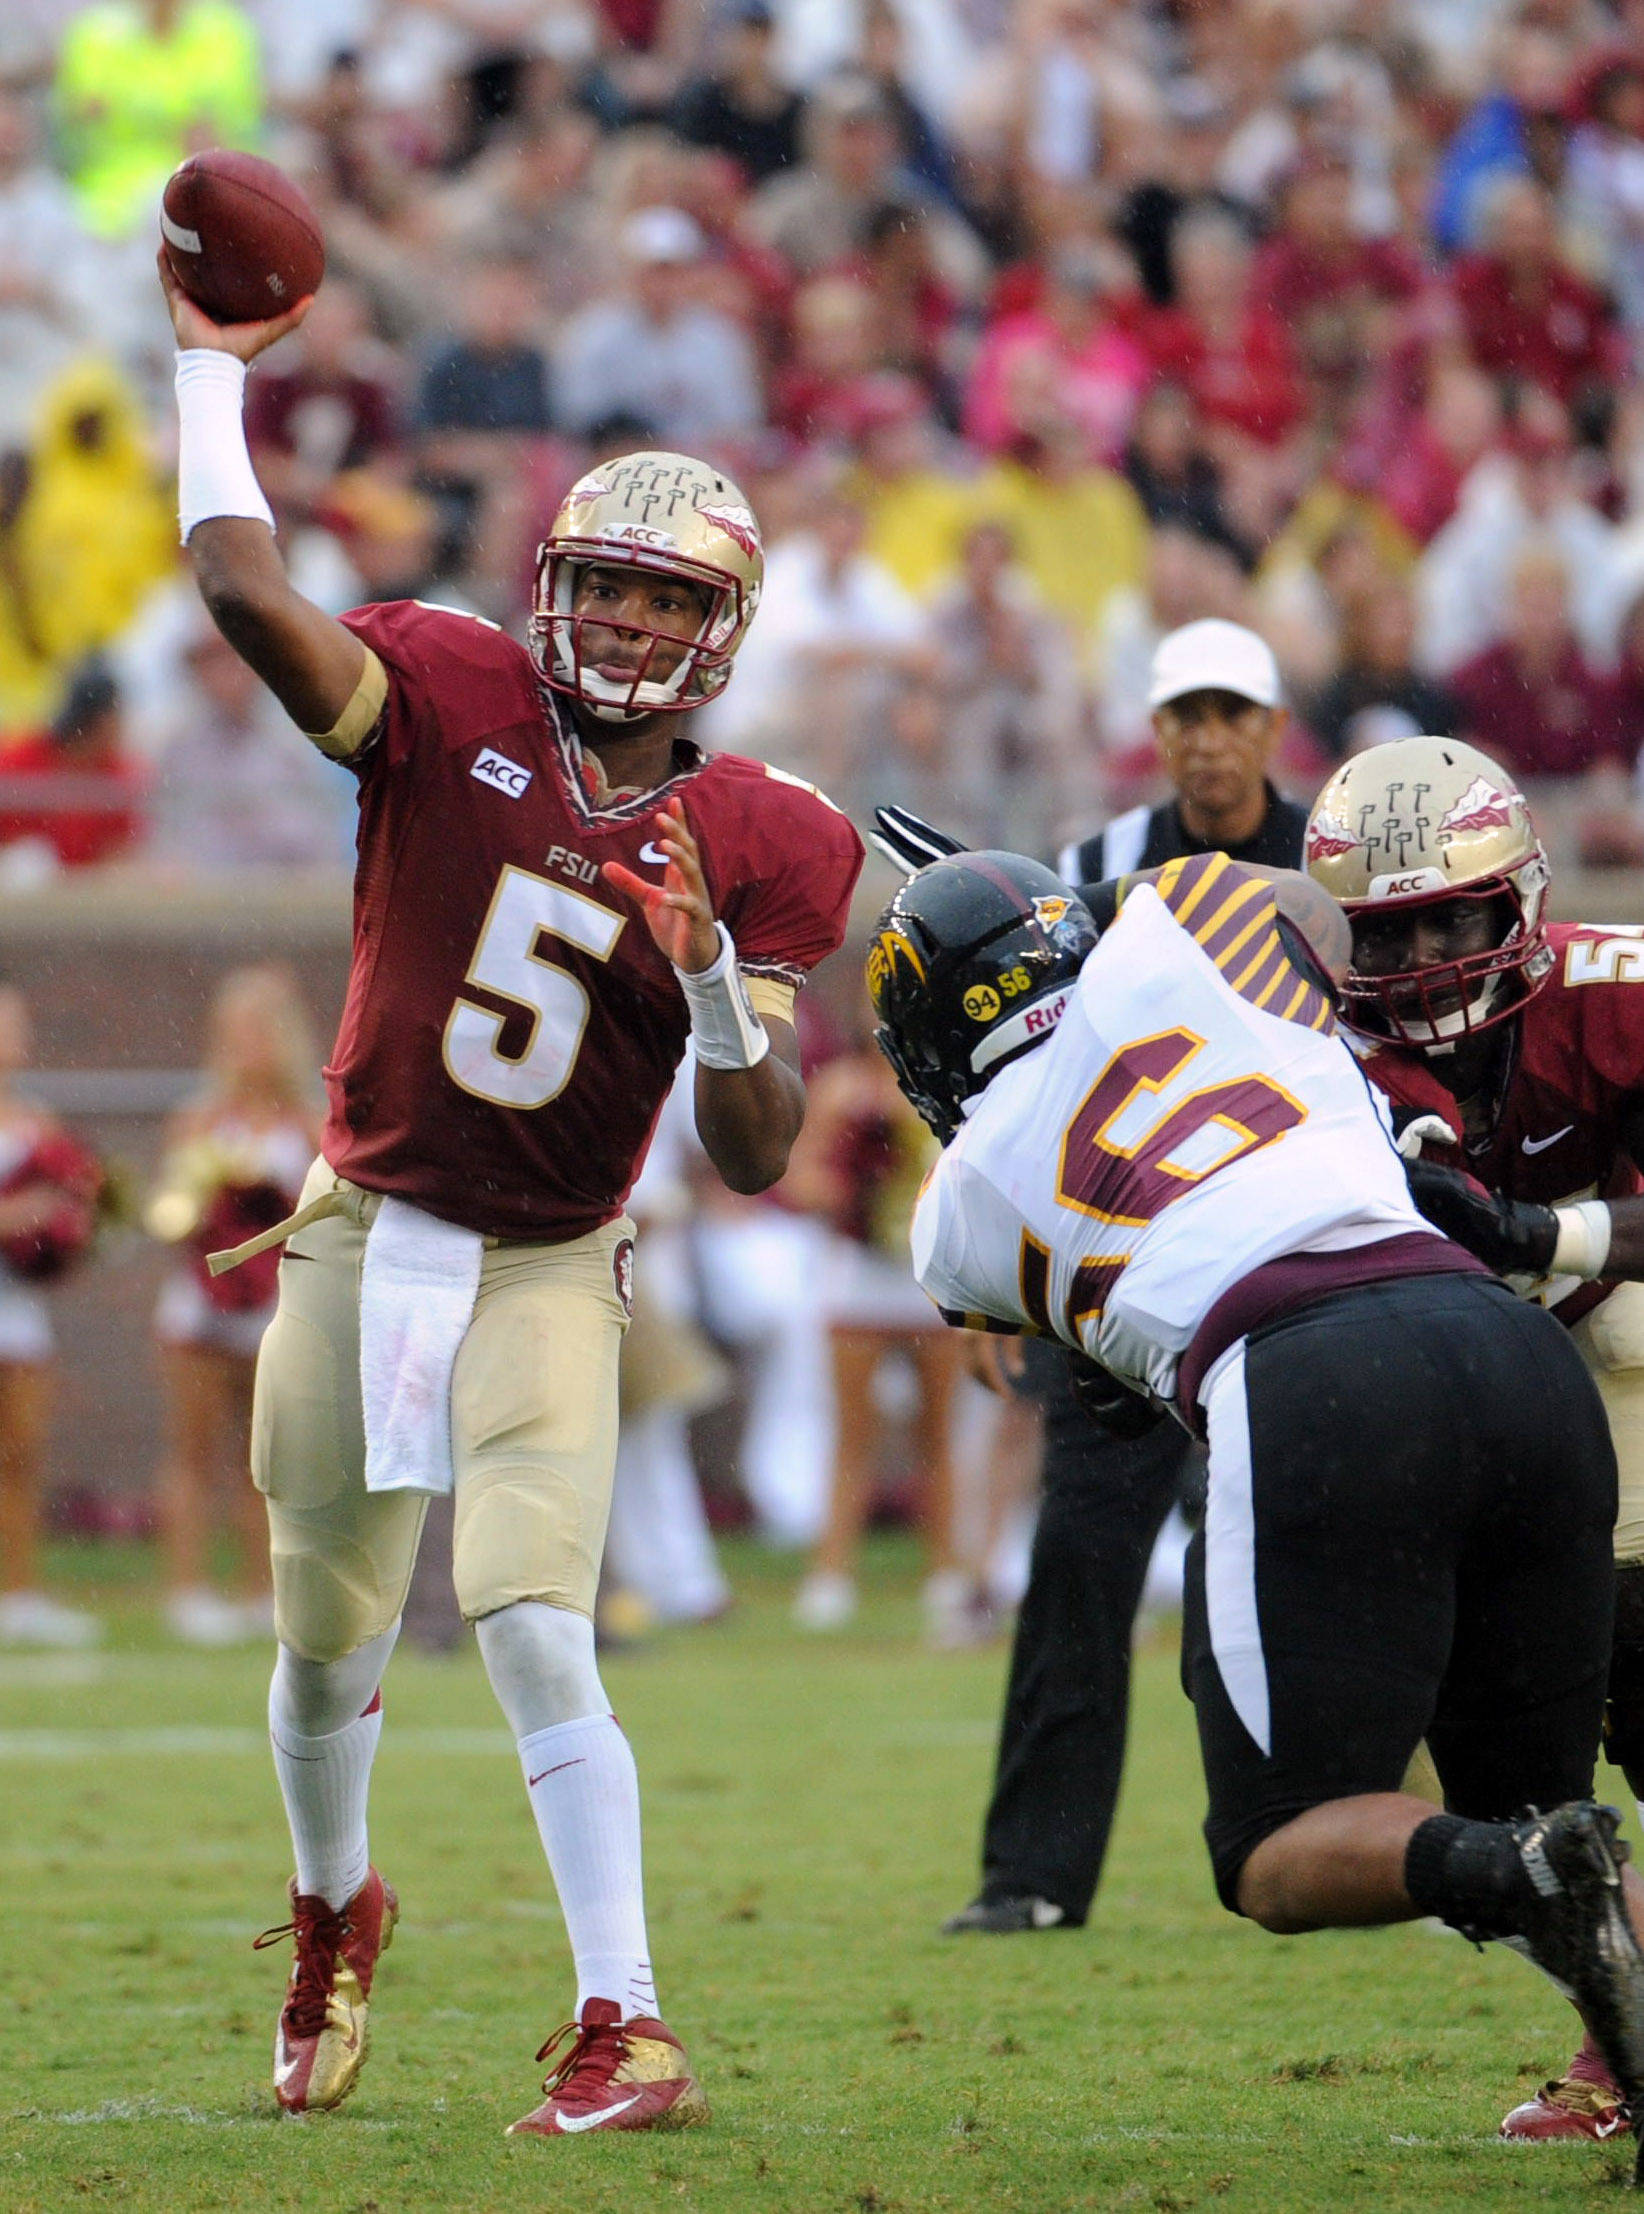 Florida State Seminoles quarterback Jameis Winston (5) throws the ball during the game against the Bethune-Cookman Wildcats. (Melina Vastola-USA TODAY Sports)